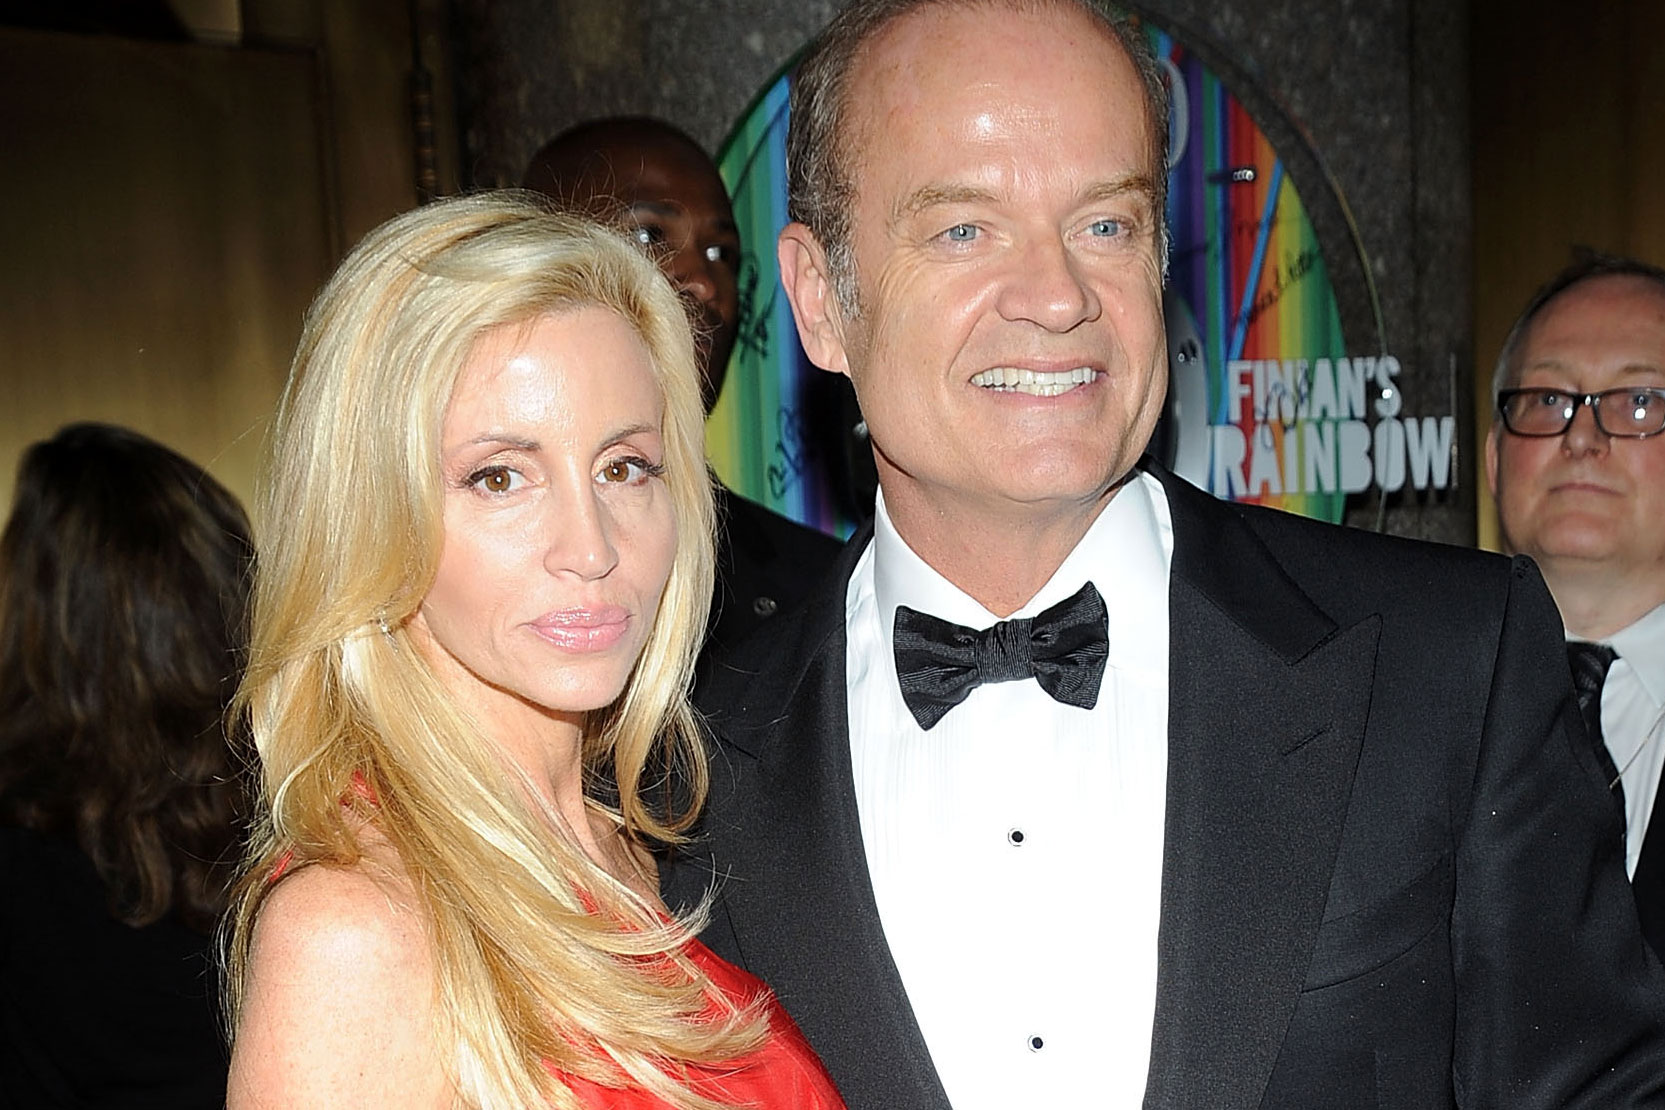 Camille Grammer and Kelsey Grammer Came to a Major Decision About Their Custody Arrangement